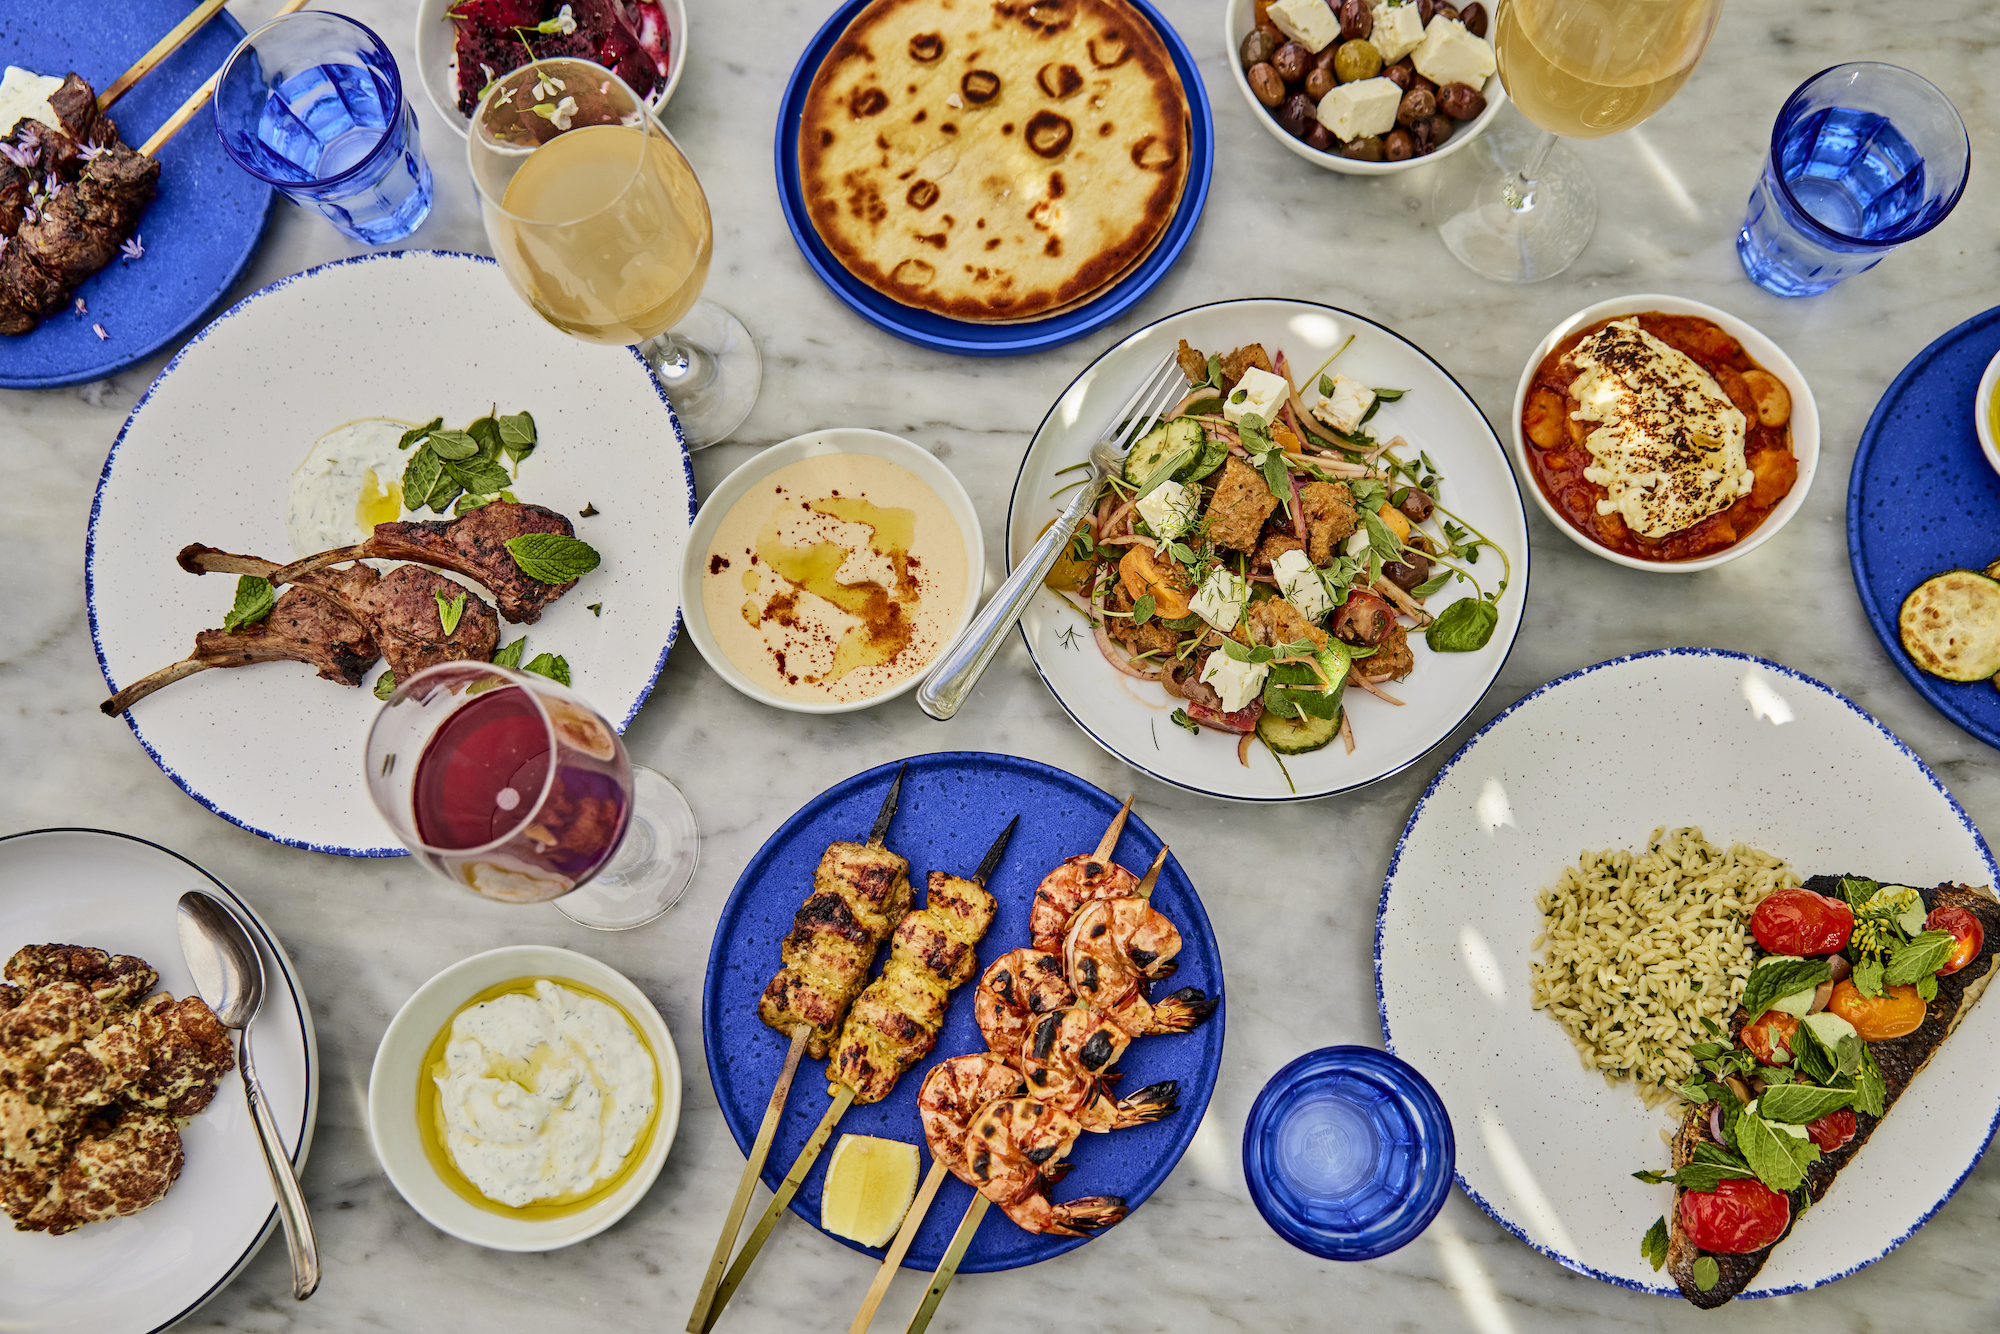 An overhead shot of Greek food on blue plates and a marble tabletop.